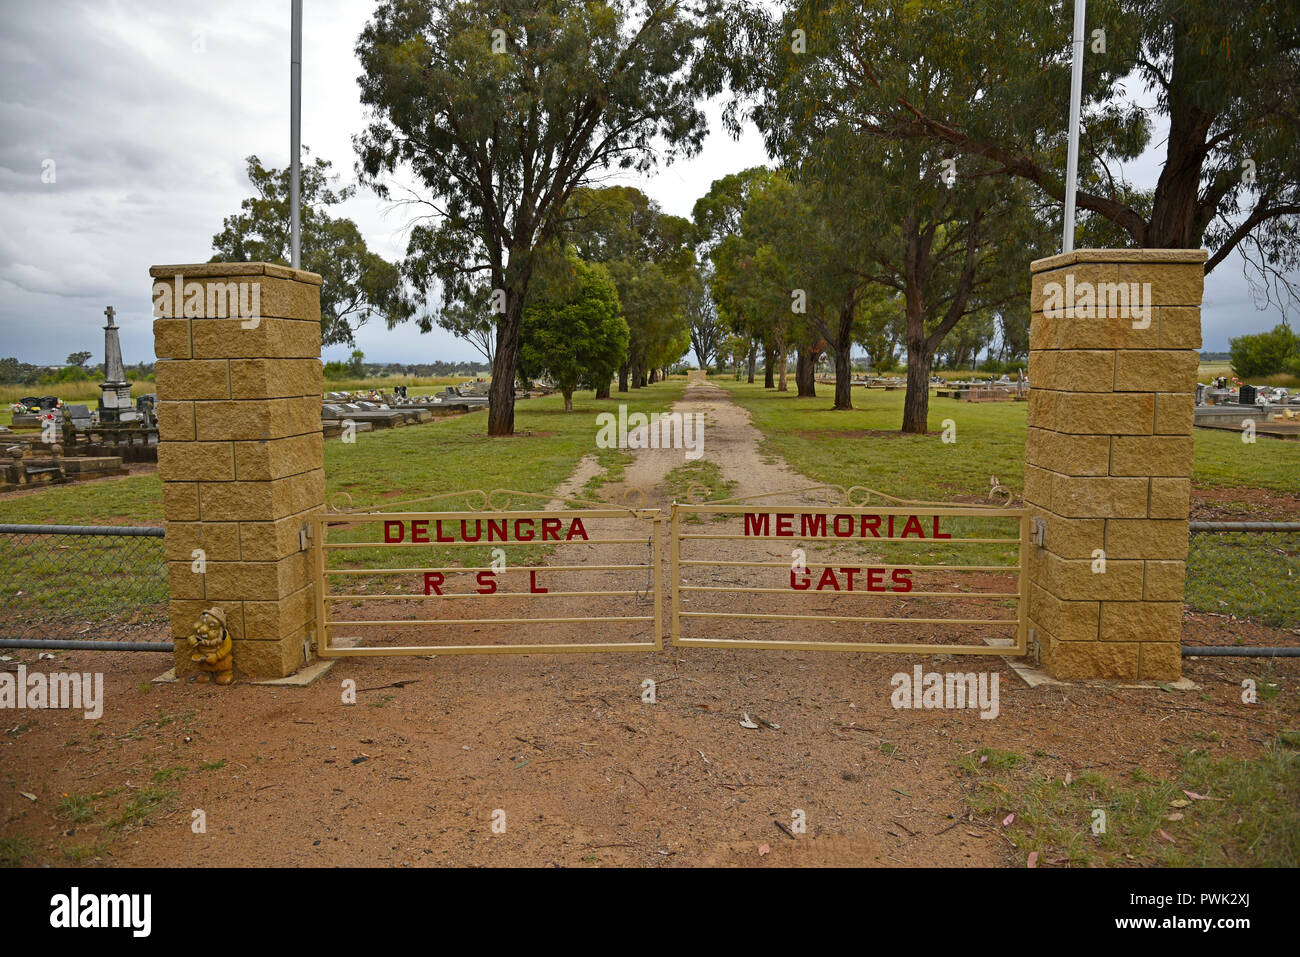 Entrance to delungra RSL memorial cemetary in northern new south wales, australia - Stock Image